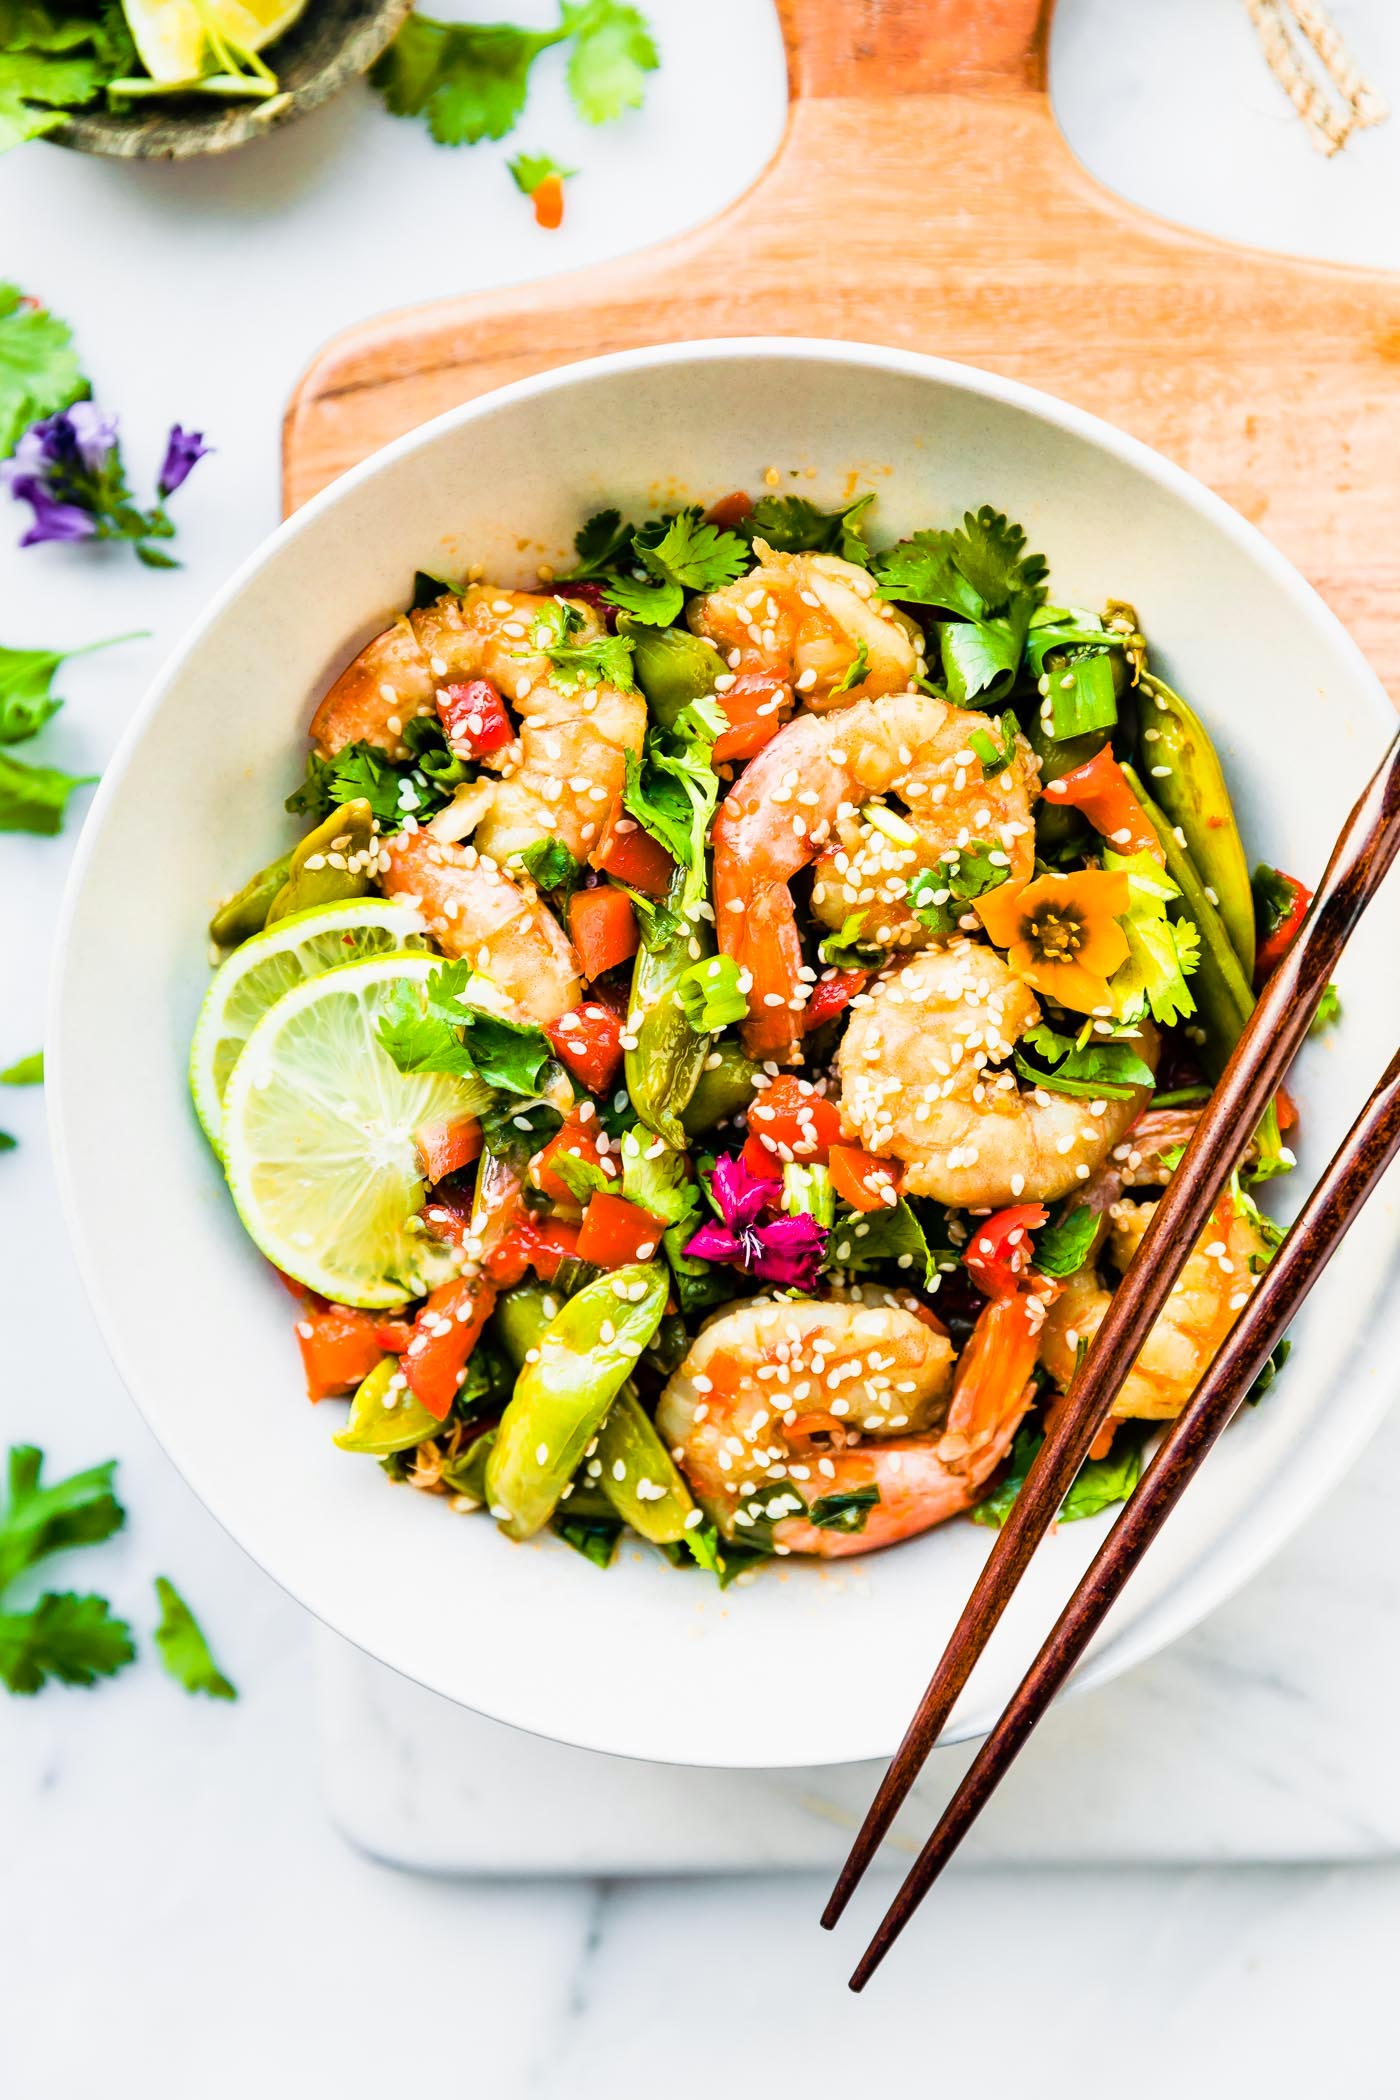 wok fired orange garlic shrimp stir fry recipe!